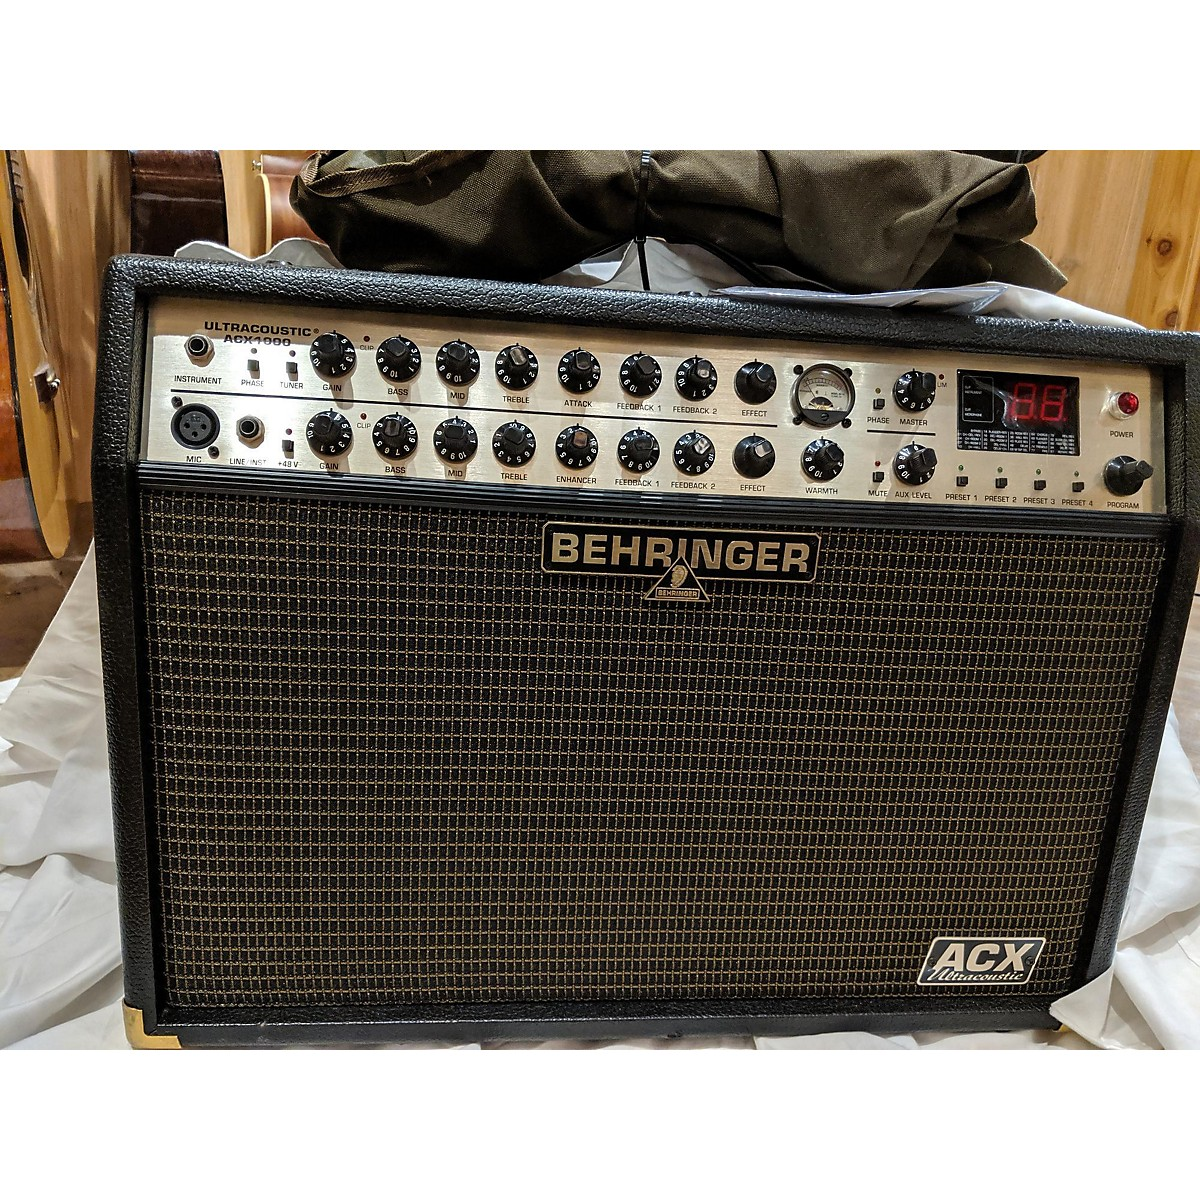 Behringer Acx1000 Ultracoustic Acoustic Guitar Combo Amp